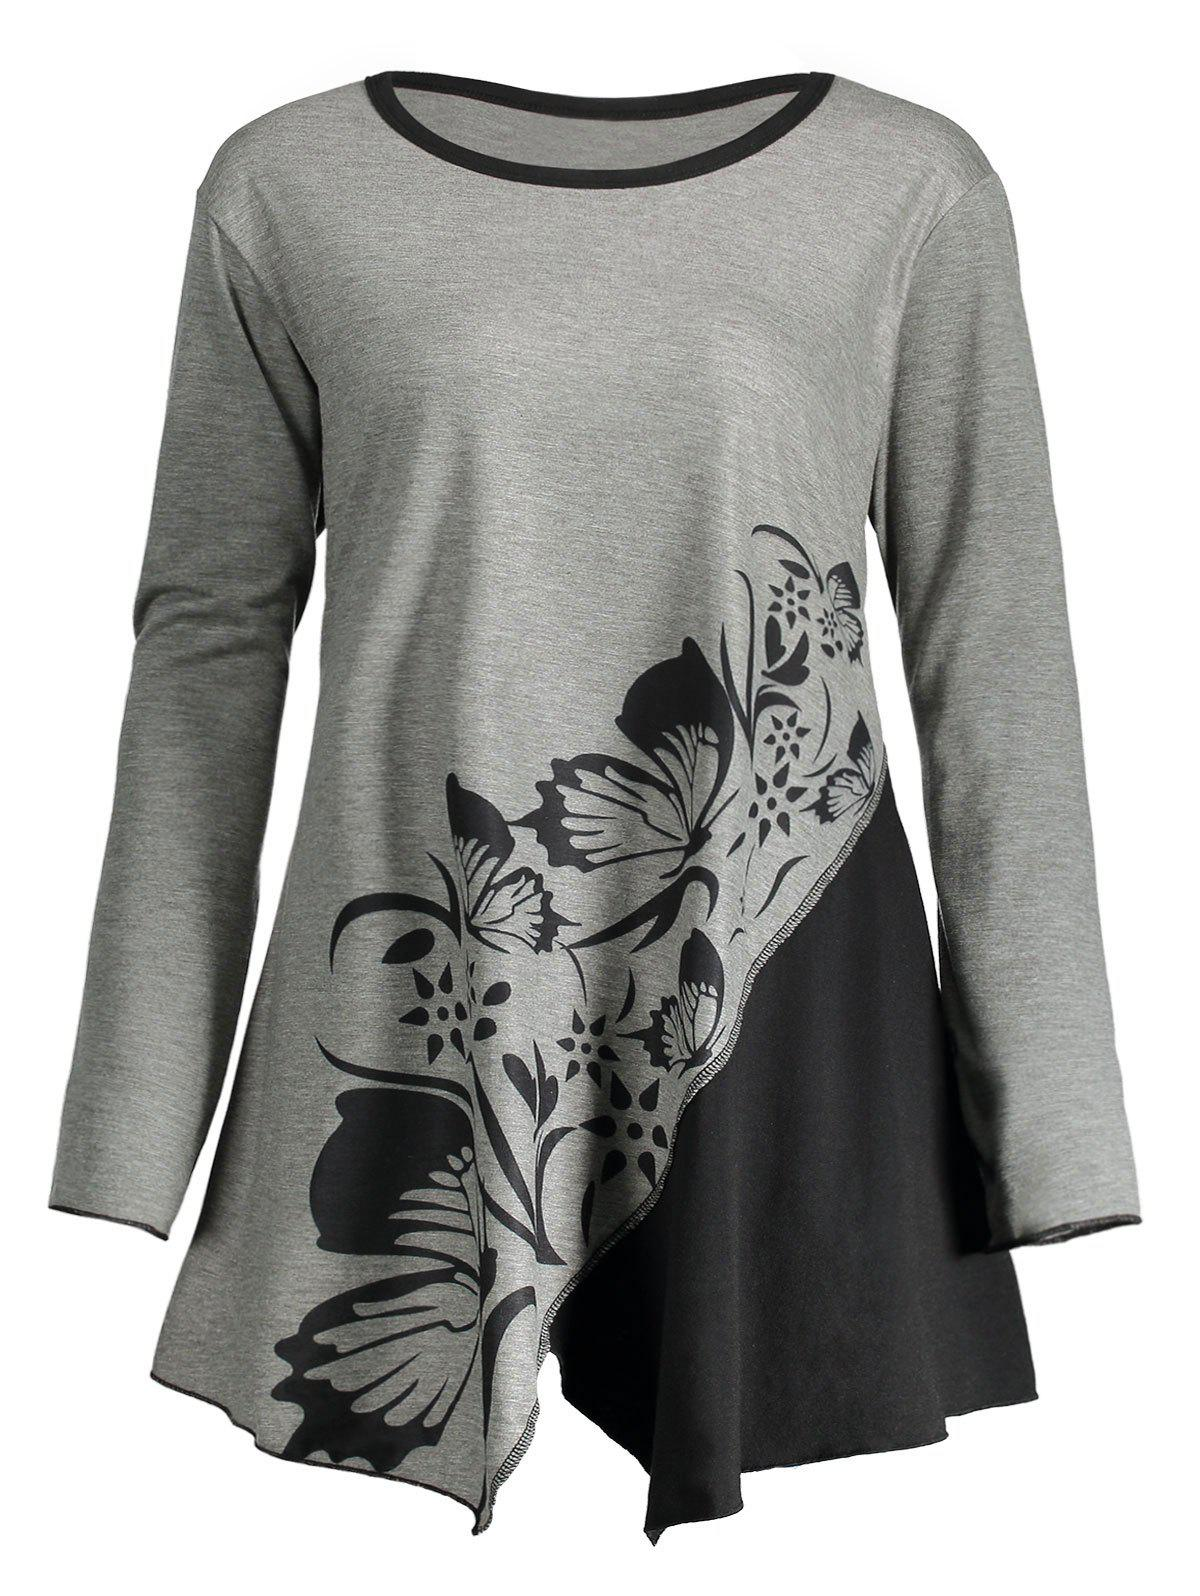 Butterfly Play Flower Plus Size Split T-shirtWOMEN<br><br>Size: 4XL; Color: GRAY; Material: Polyester,Spandex; Shirt Length: Regular; Sleeve Length: Full; Collar: Round Neck; Style: Casual; Season: Fall,Spring; Embellishment: Panel,Slit; Pattern Type: Floral,Print; Elasticity: Elastic; Weight: 0.3300kg; Package Contents: 1 x T-shirt;